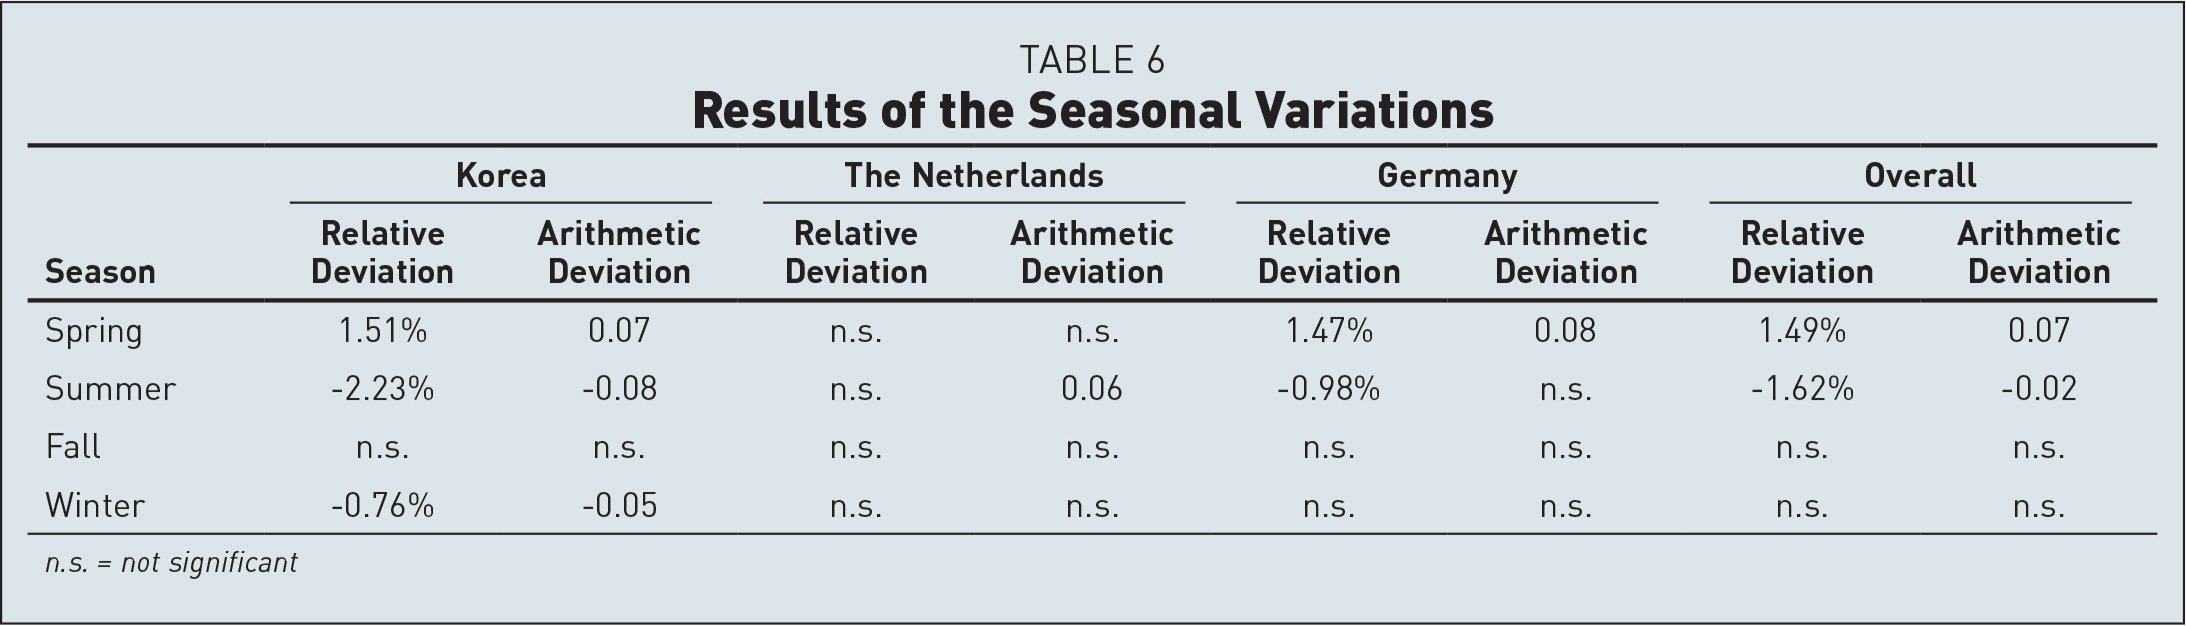 Results of the Seasonal Variations